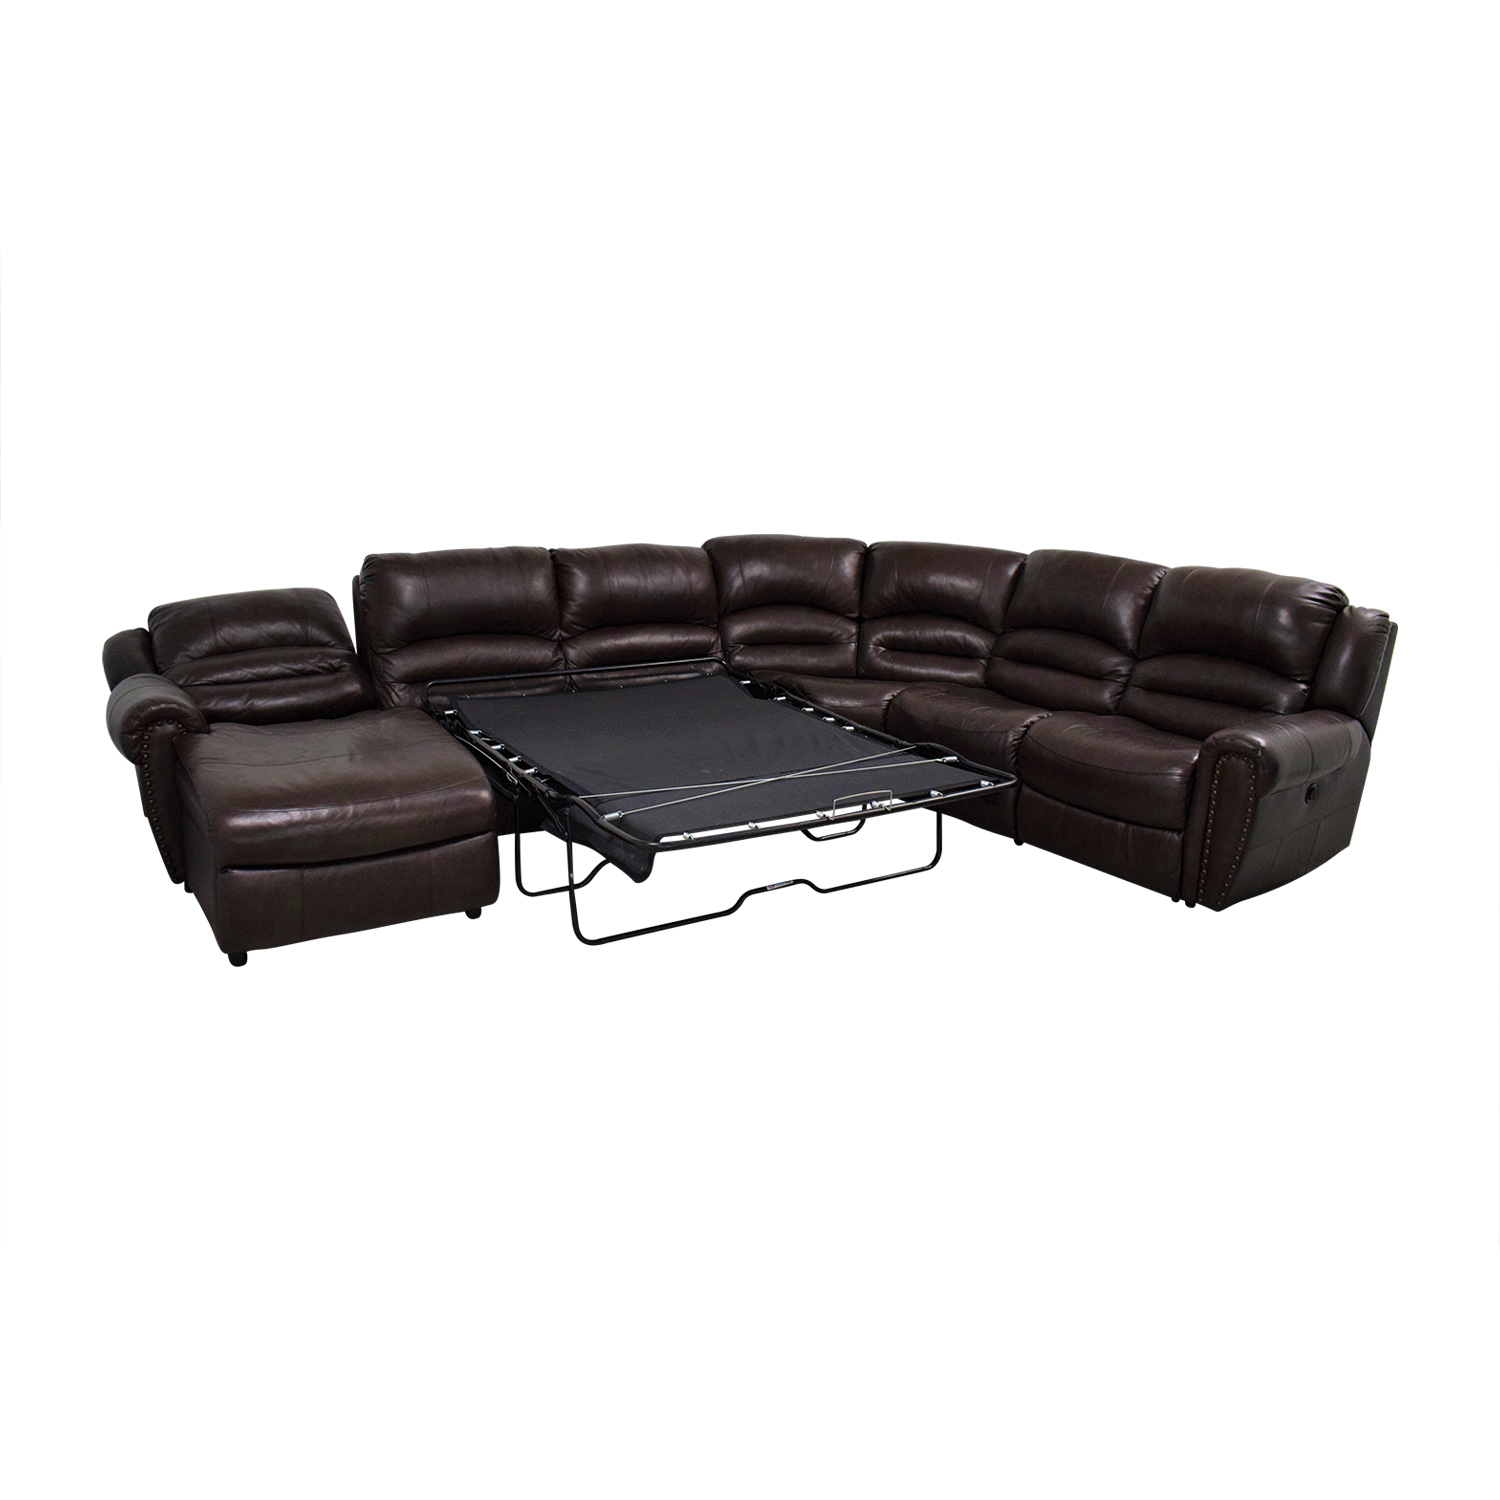 Raymour & Flanigan Raymour & Flanigan Chaise Recliner Sectional Sleeper Sofa second hand